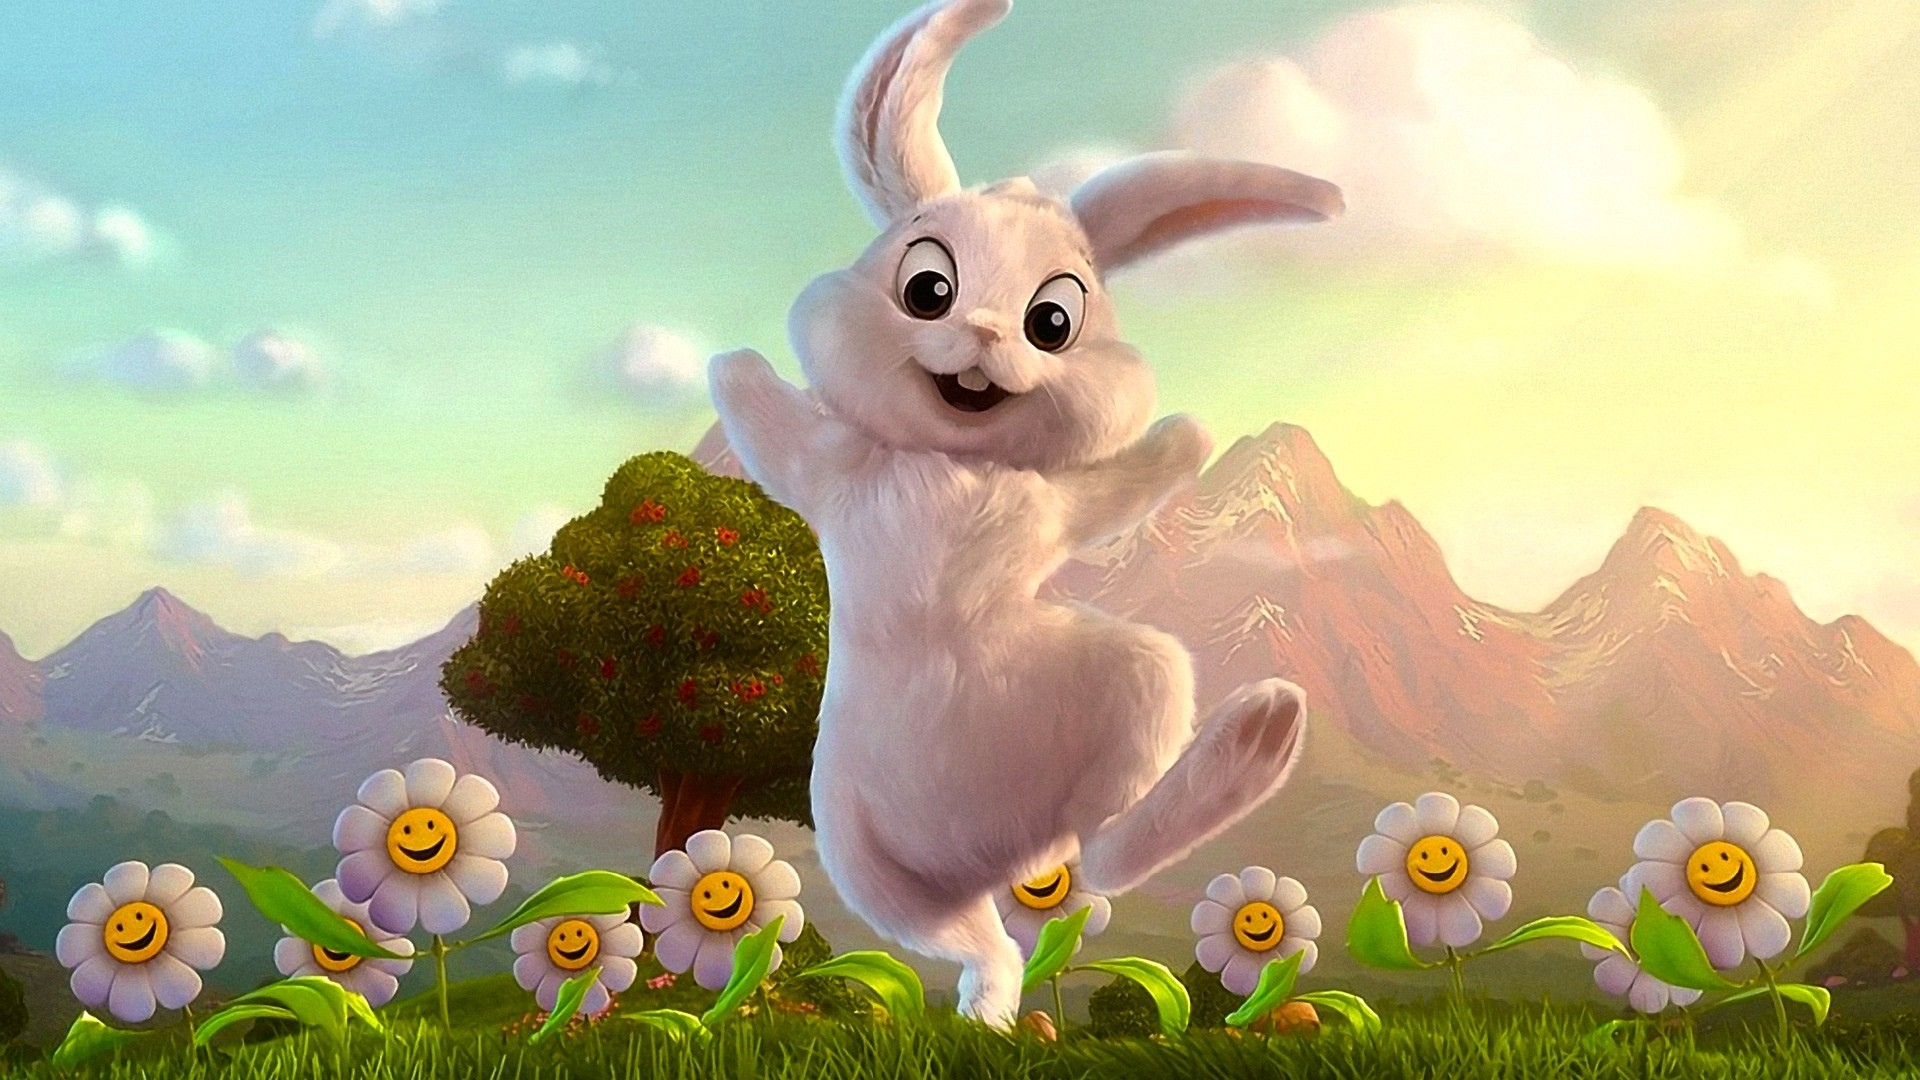 1920x1080 Tag HDQ Easter Wallpapers Backgrounds And Pictures For Free Lyle Hirth Desktop Mobile